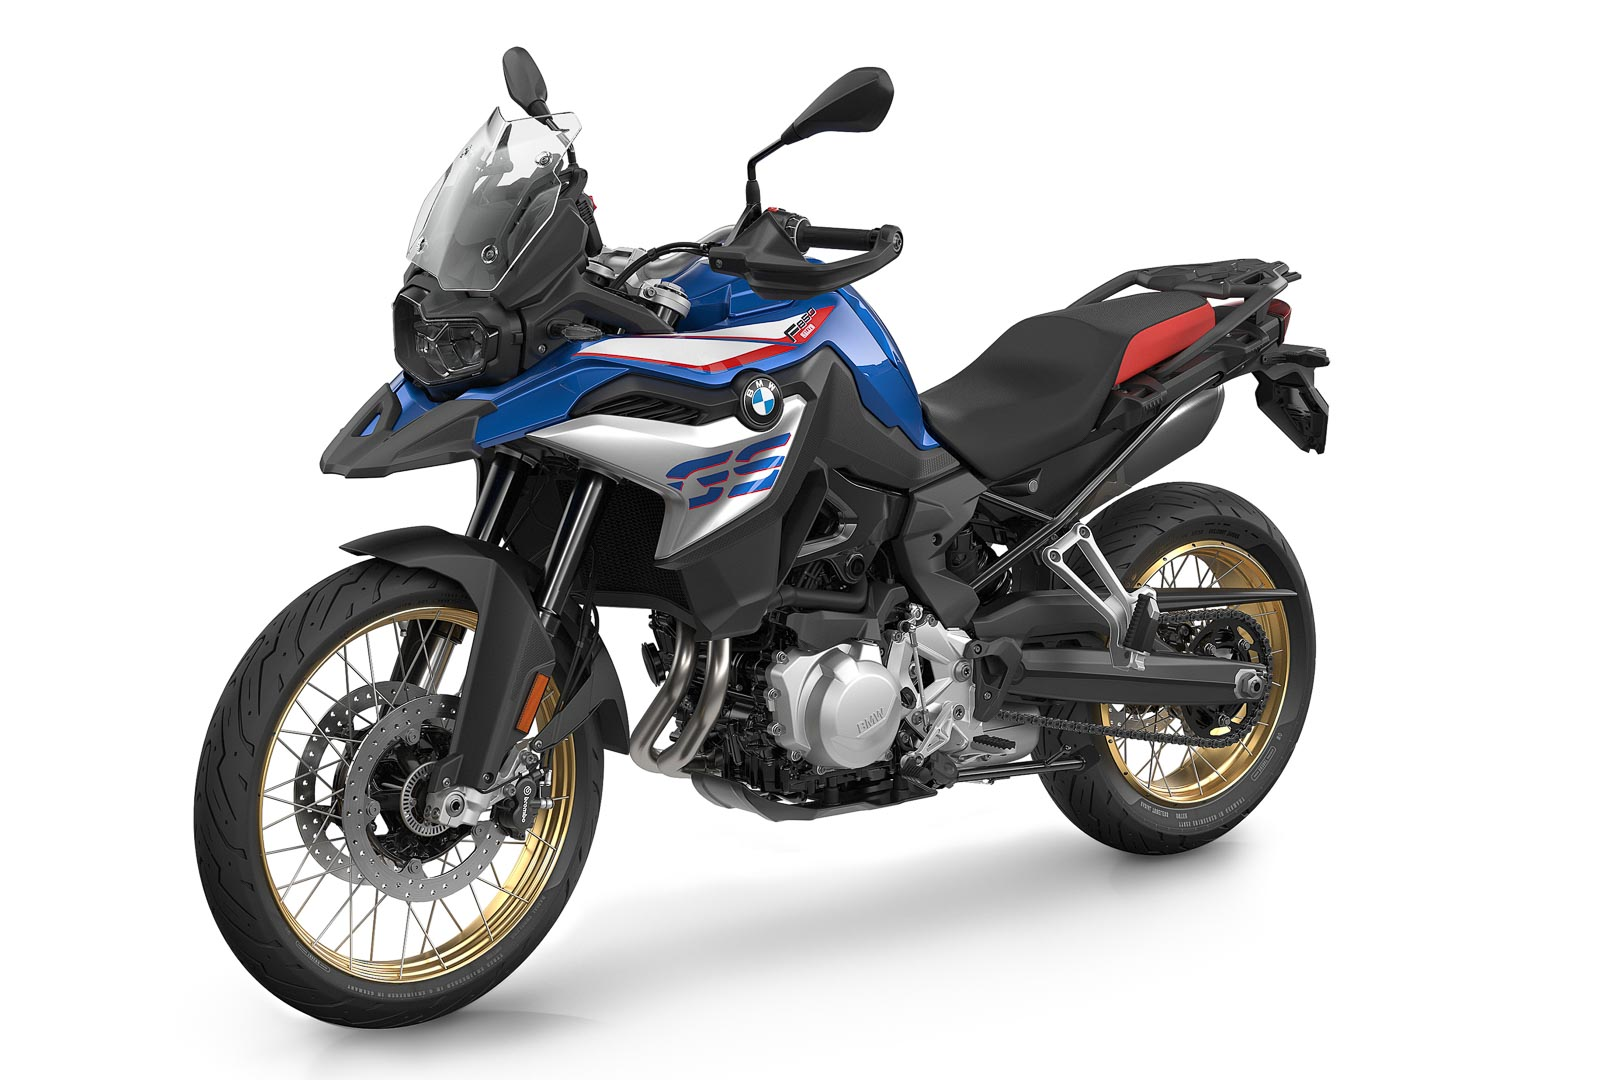 2021 Bmw F 850 Gs And Gs Adventure First Look 8 Fast Facts